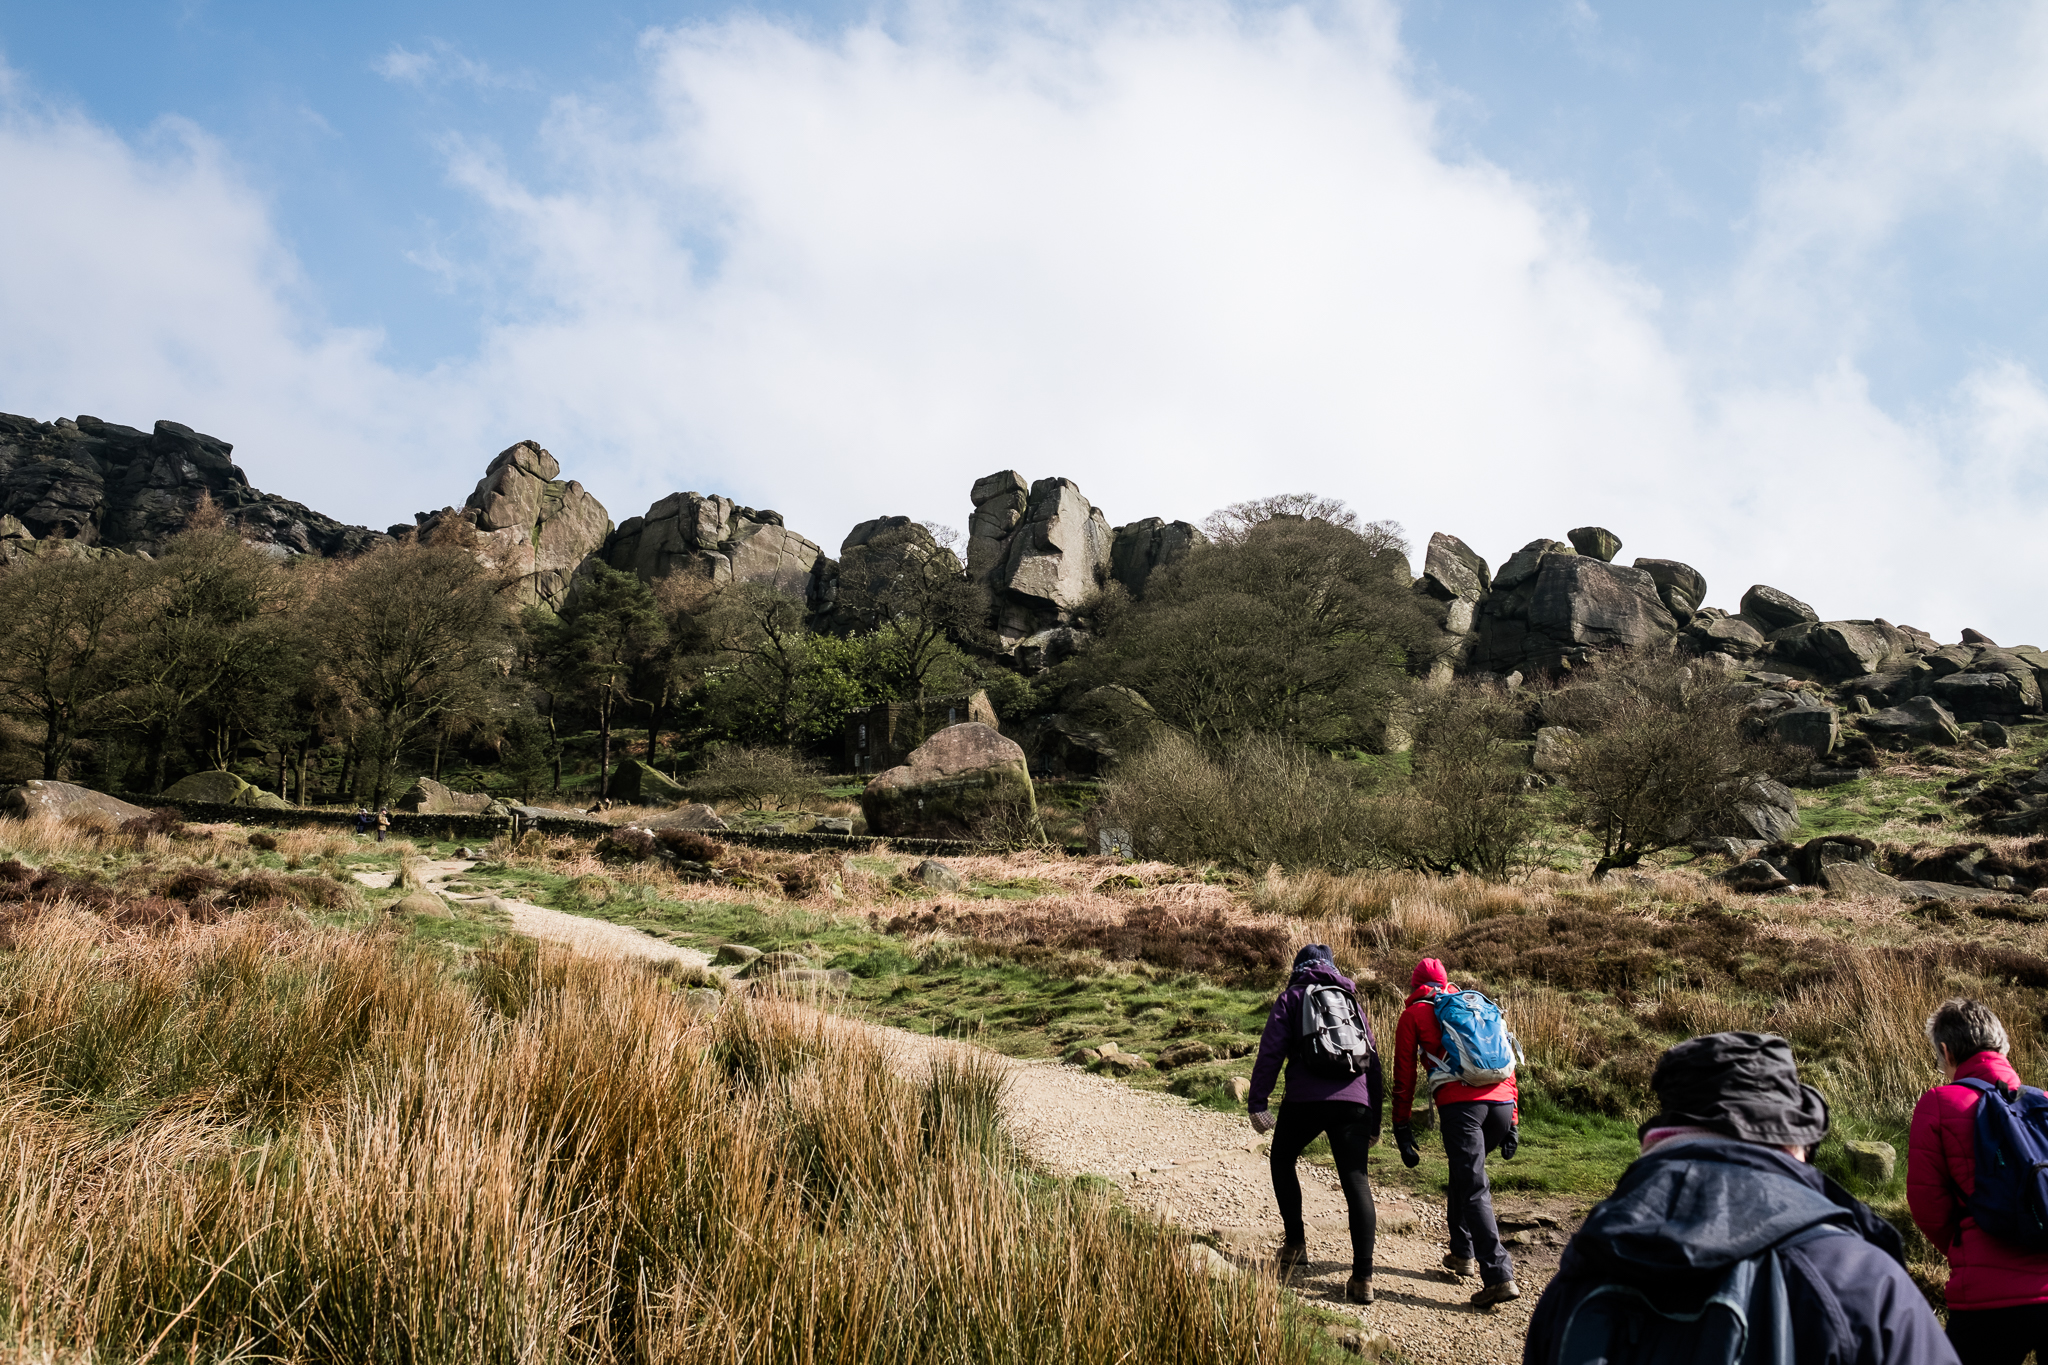 03.23.2017 Photowalk with Get Some Fresh Air The Roaches and Lud's Church Ludchurch Staffordshire Upper Hulme Ridge Rocks-3.jpg